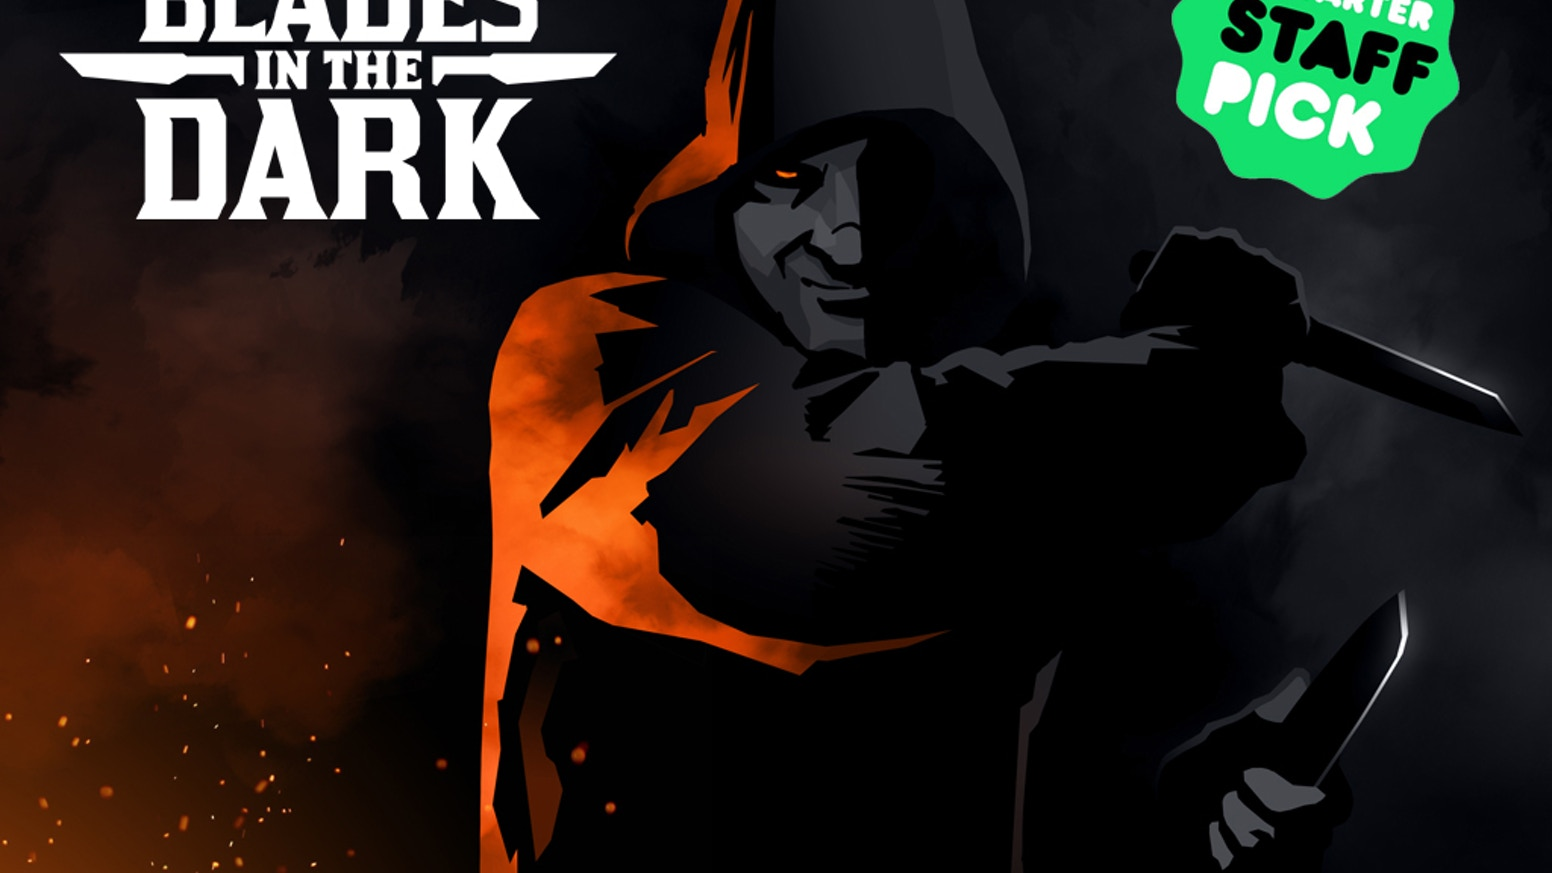 Blades in the Dark is a tabletop RPG about a crew of daring scoundrels building a criminal empire in a haunted city full of thieves.